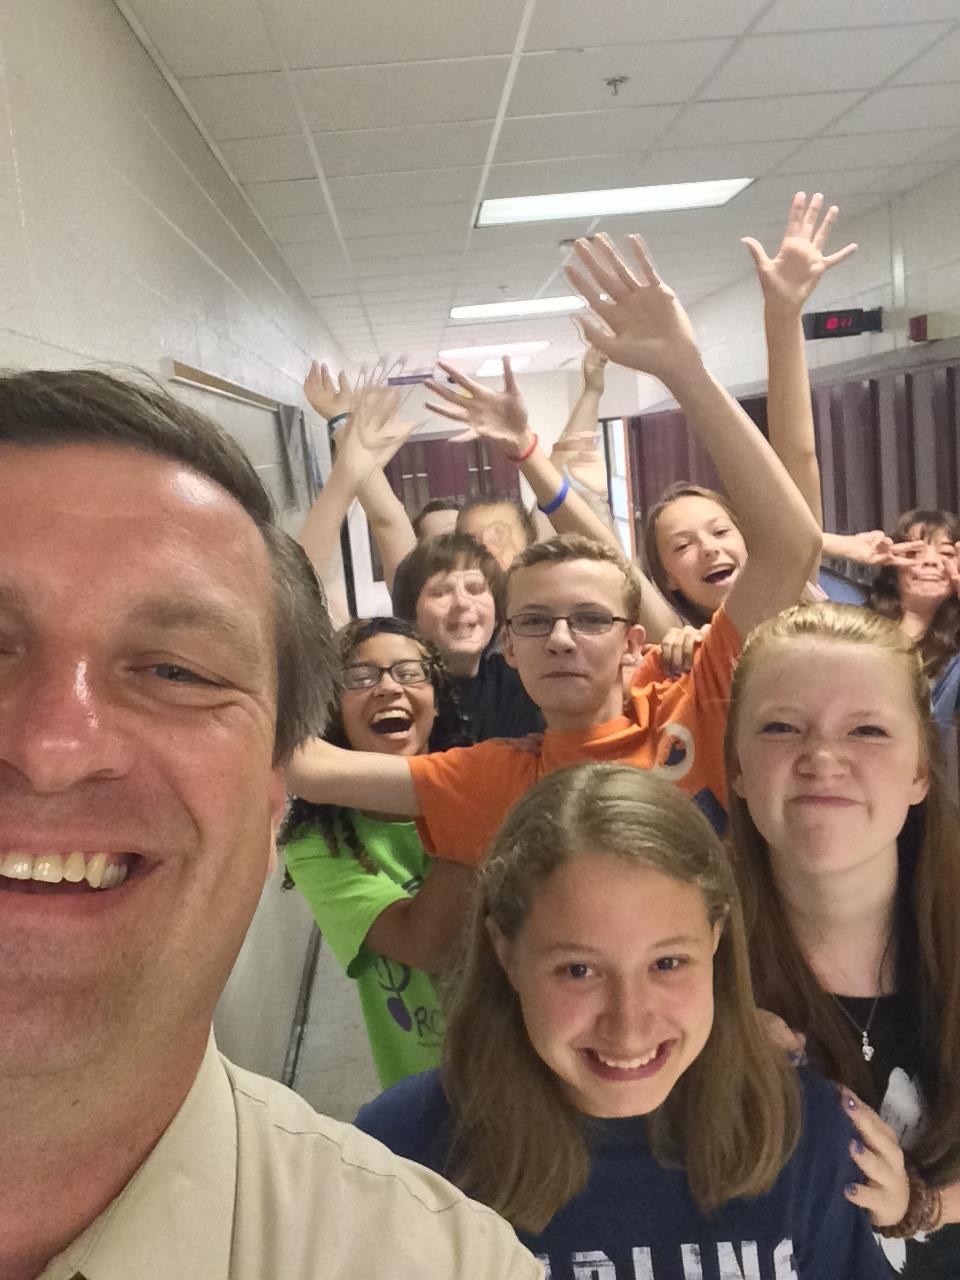 Photo provided by Tom Conway - Tom and his students celebrate their upcoming poetry slam.